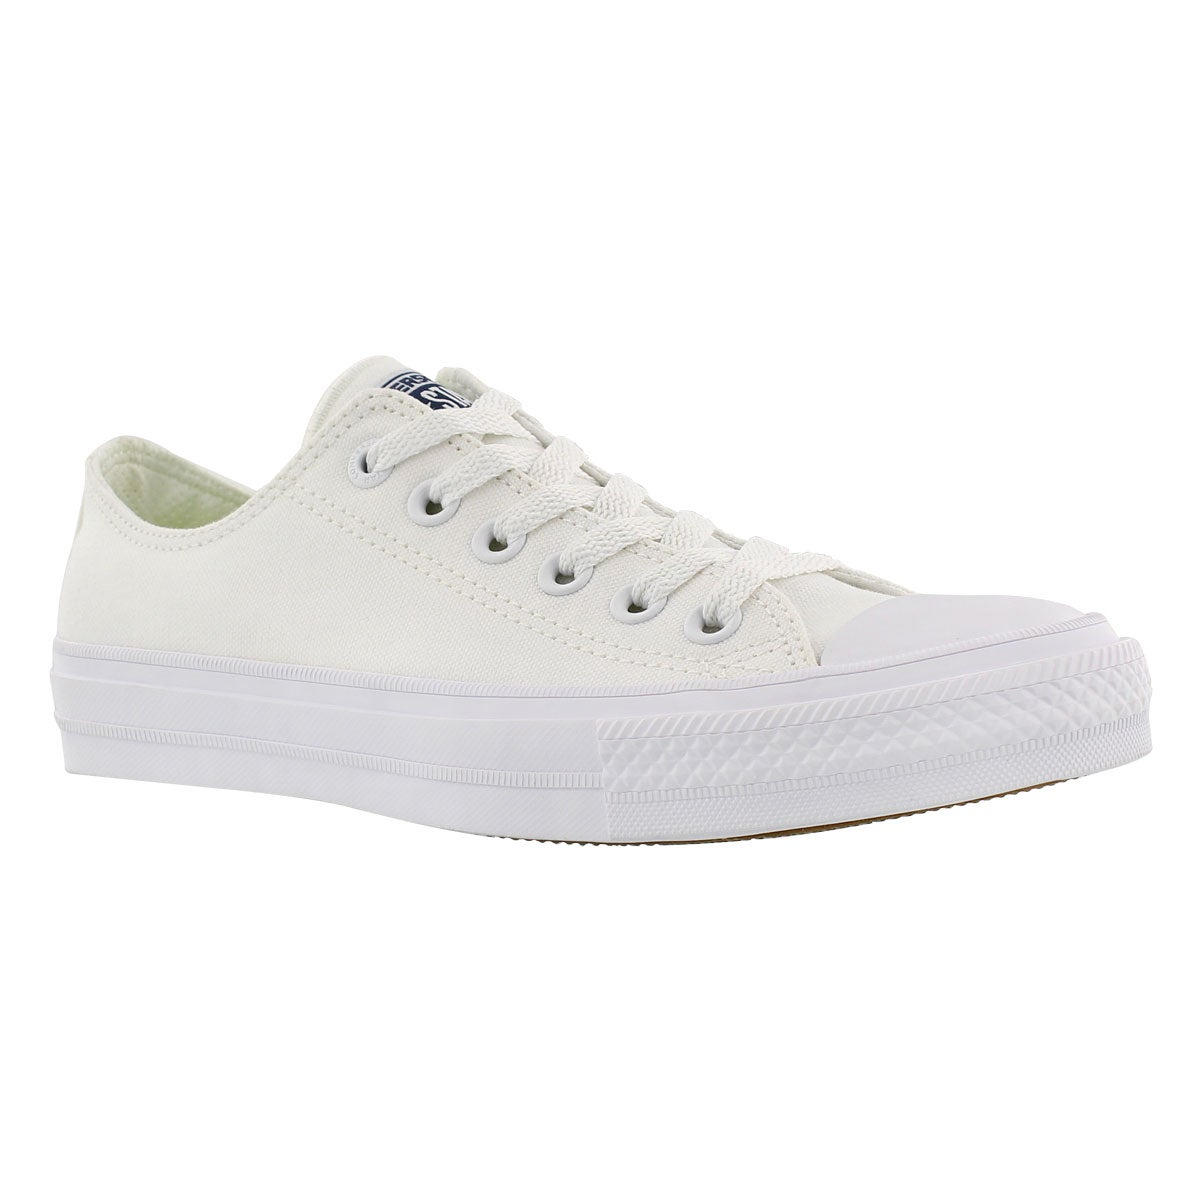 Women's CHUCK II VIZ FLOW white sneakers